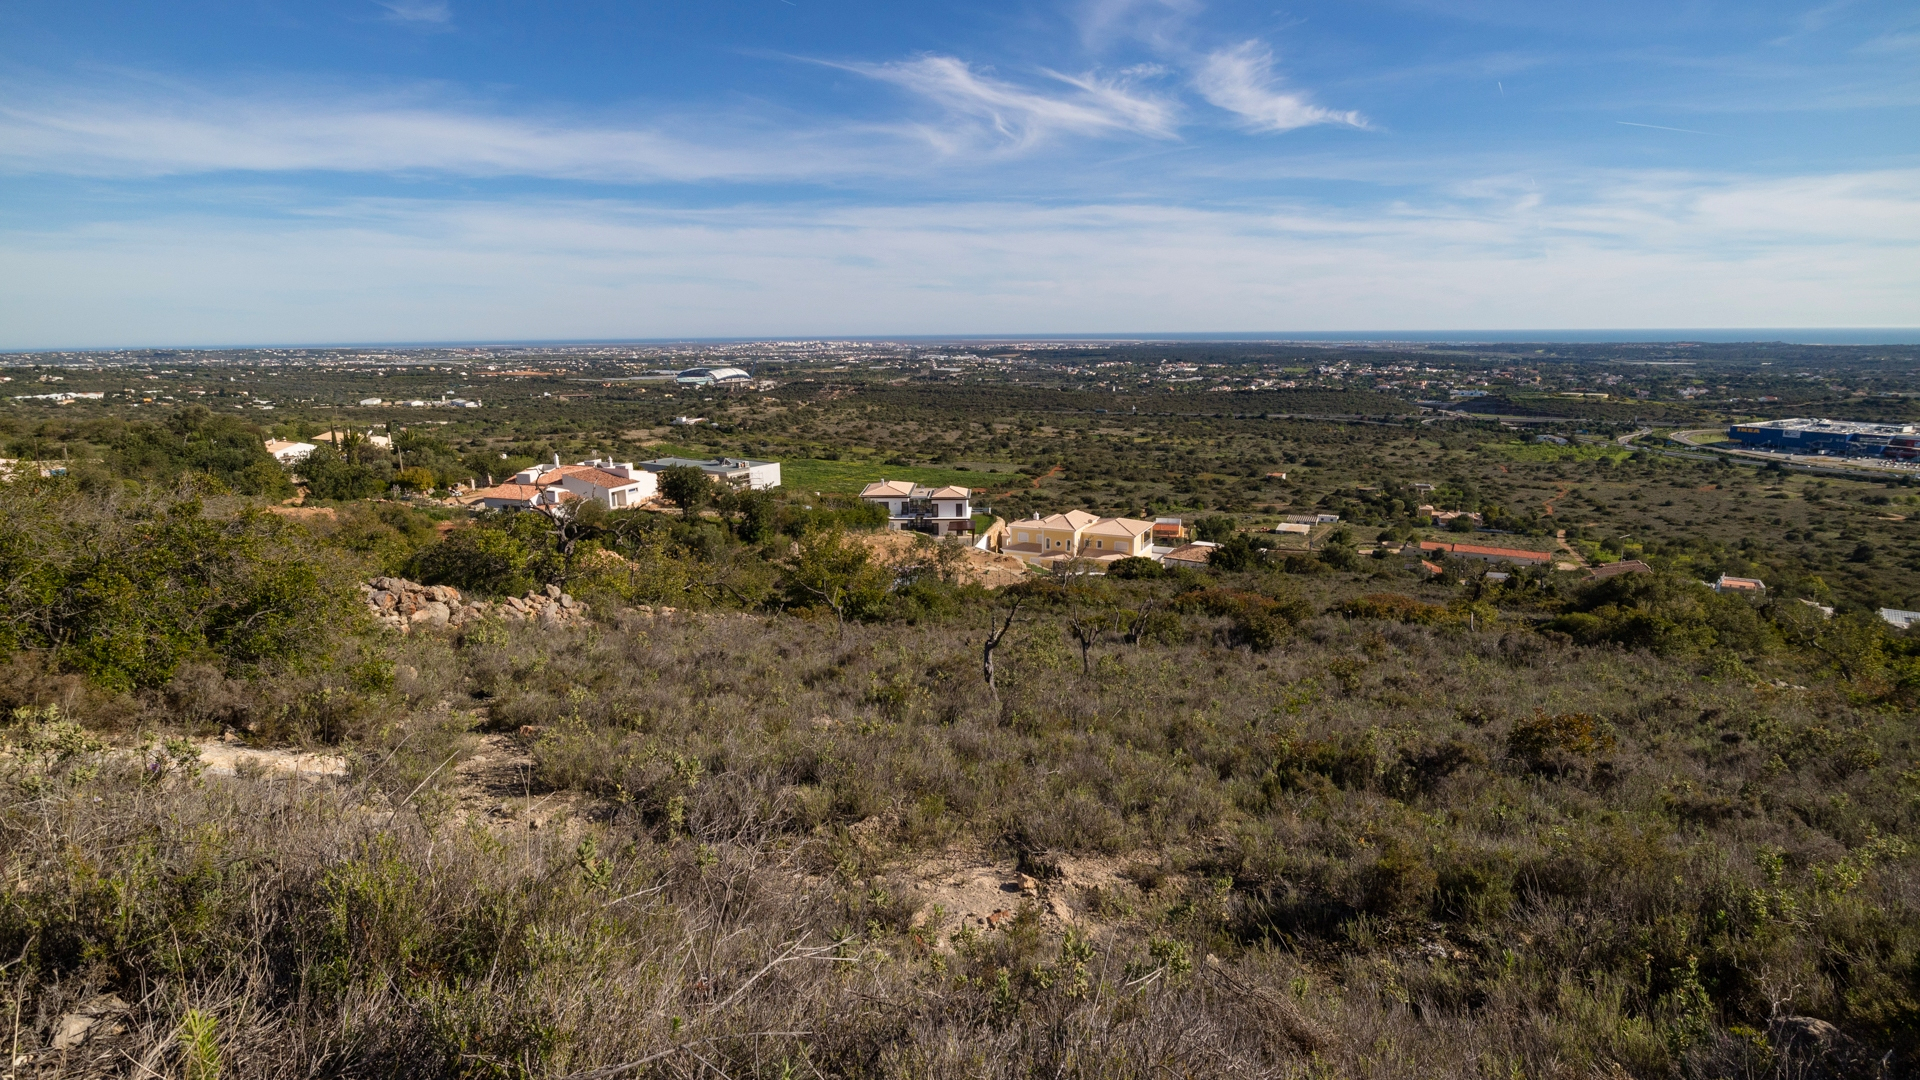 Plot with Fabulous Views and Building Project approved for 2 Villas, Santa Bárbara de Nexe | VM1075 Big plot with building project for 2 villas, in Santa Bárbara de Nexe. The plot is located close to all amenities and has beautiful sea views.